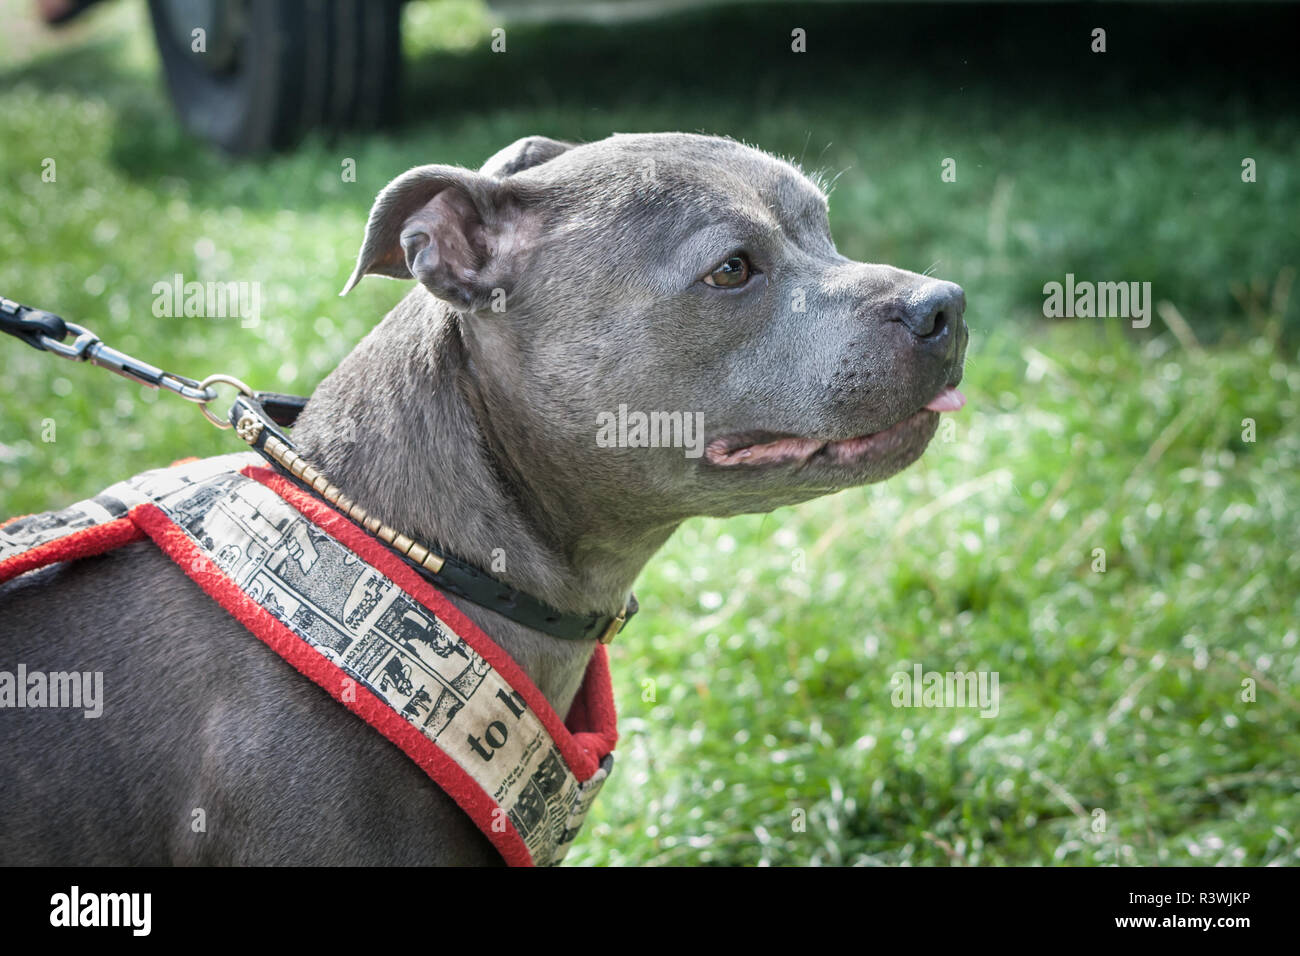 Blue Staffordshire Bull Terrier on a dog show wearing a collar and a weight pulling harness - Stock Image